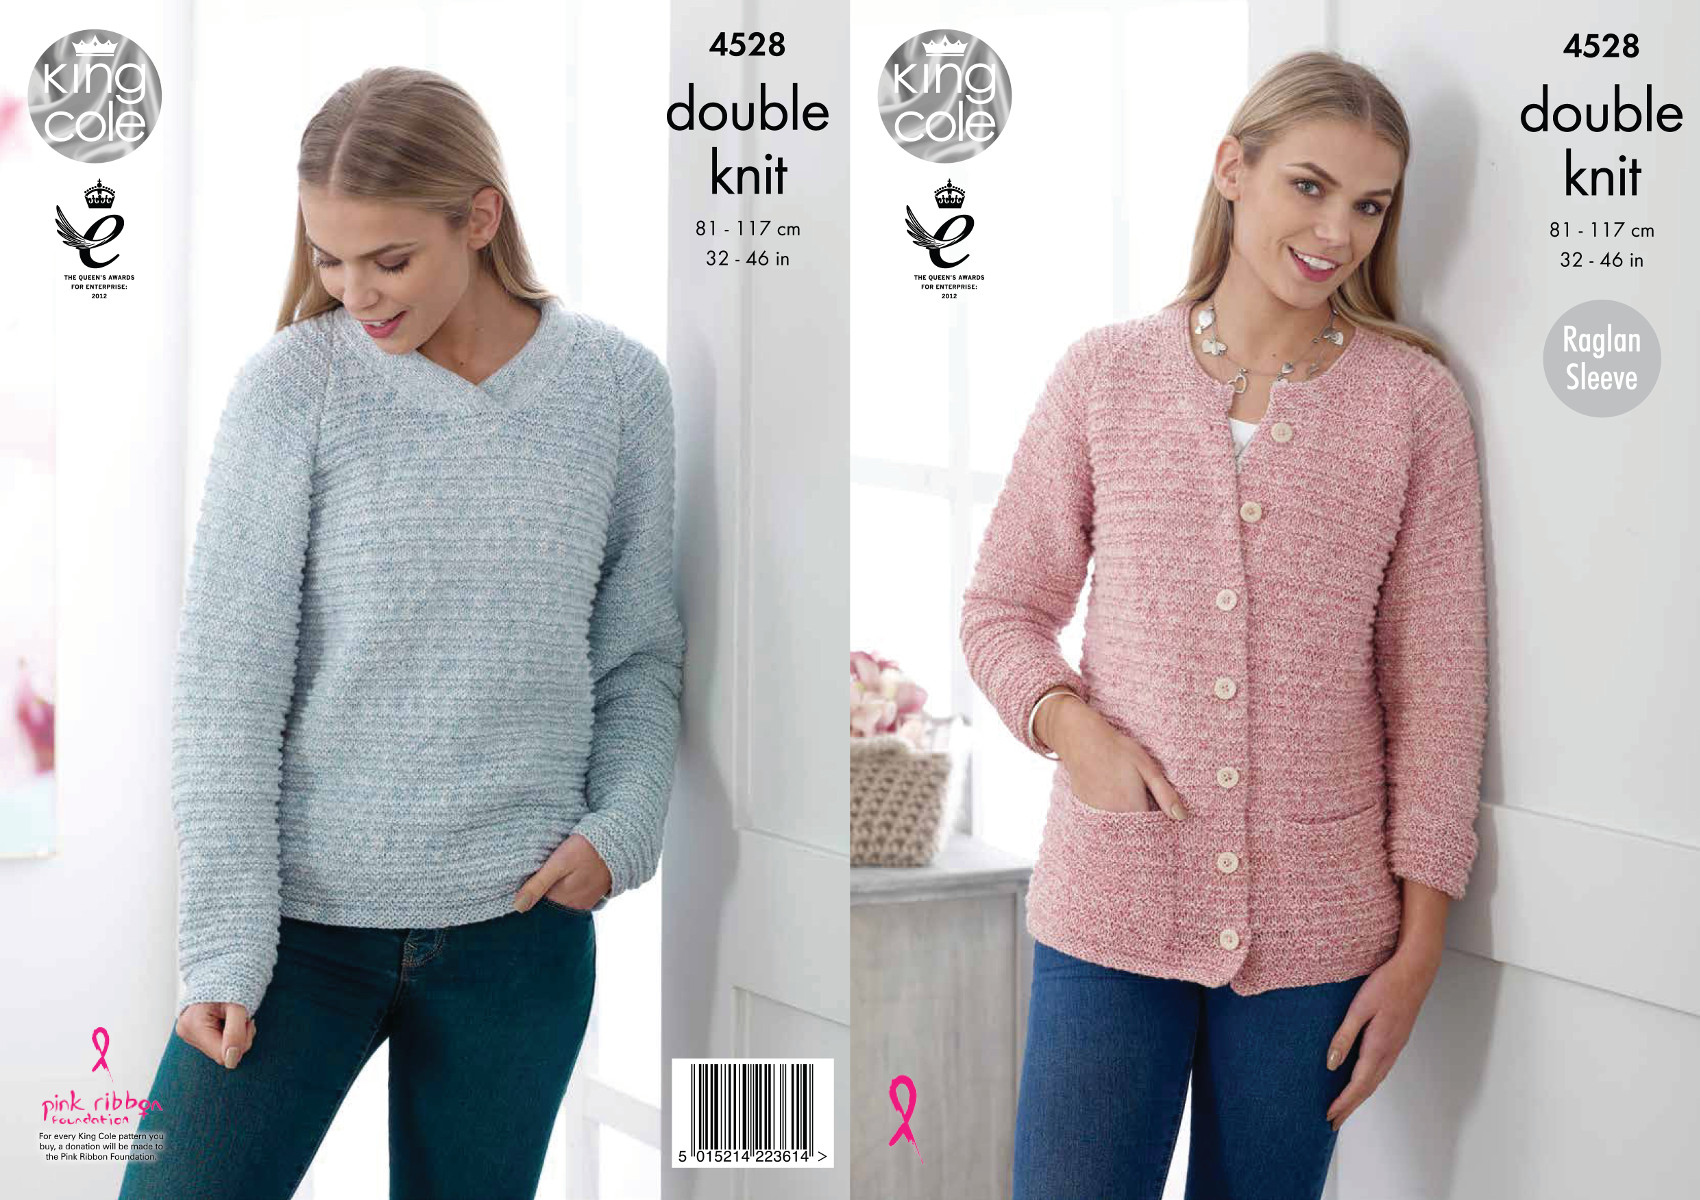 Knitting Pattern Raglan Cardigan : Womens Raglan Sleeve Sweater & Cardigan Knitting Pattern King Cole DK 452...